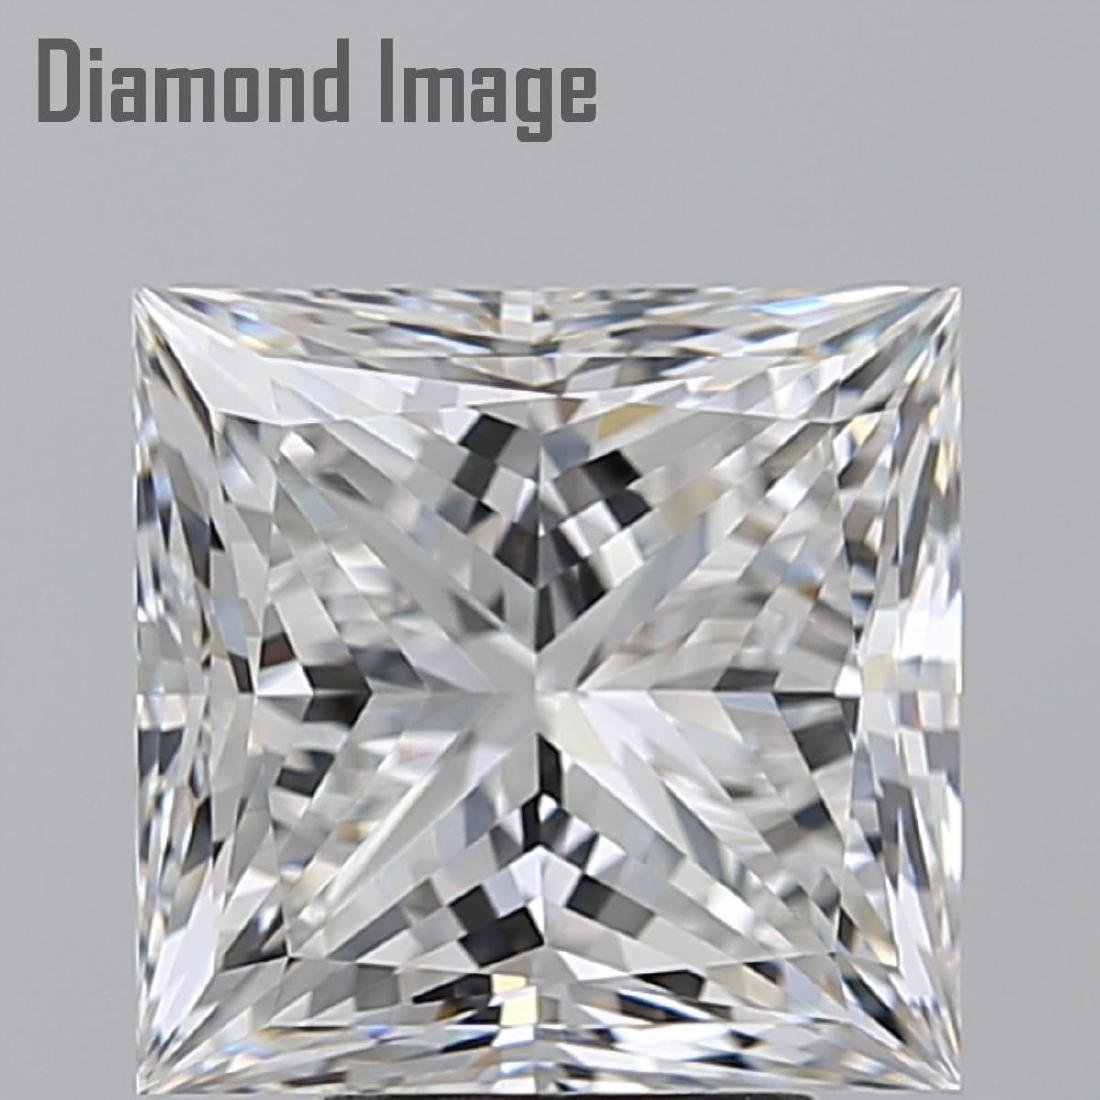 5.02 ct, Color F/VVS2, Princess cut Diamond - 2